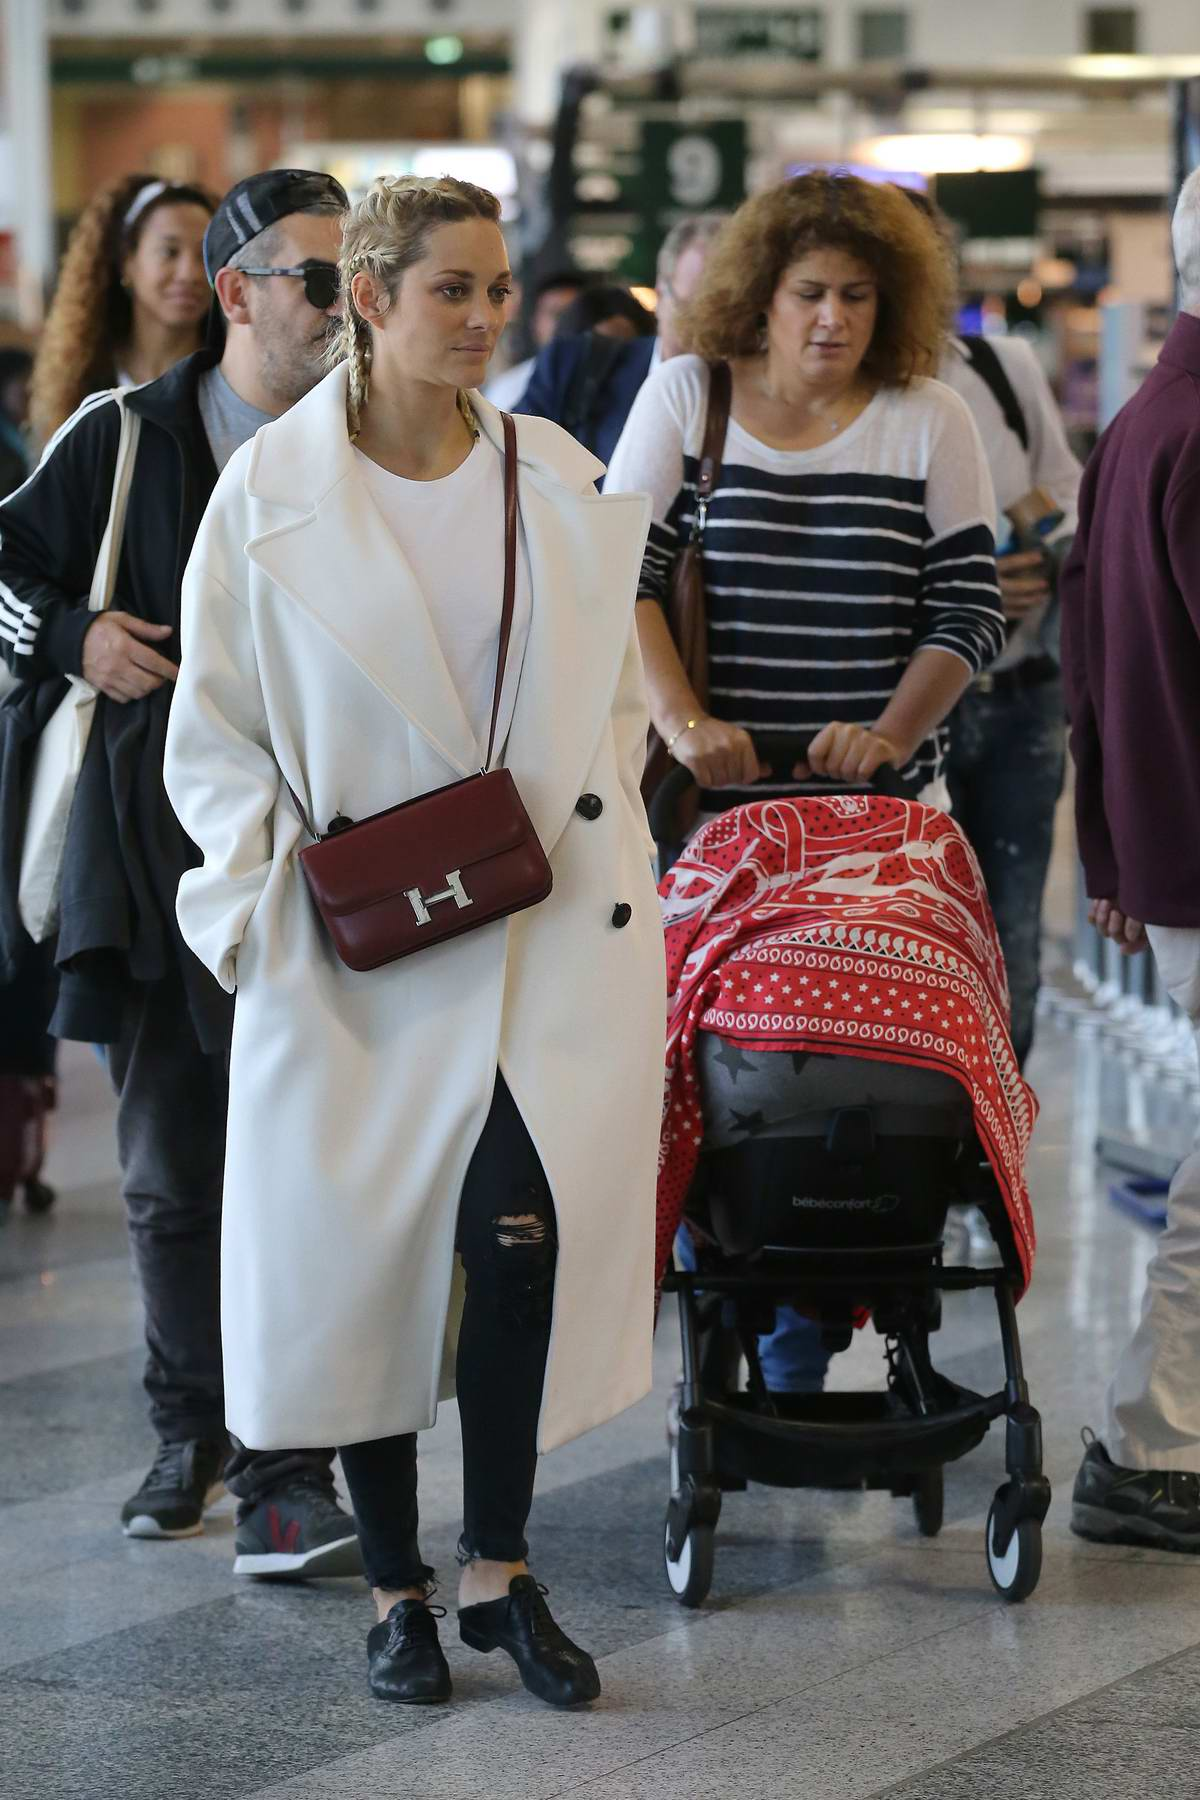 Marion Cotillard Arriving At The Milan Airport With Her